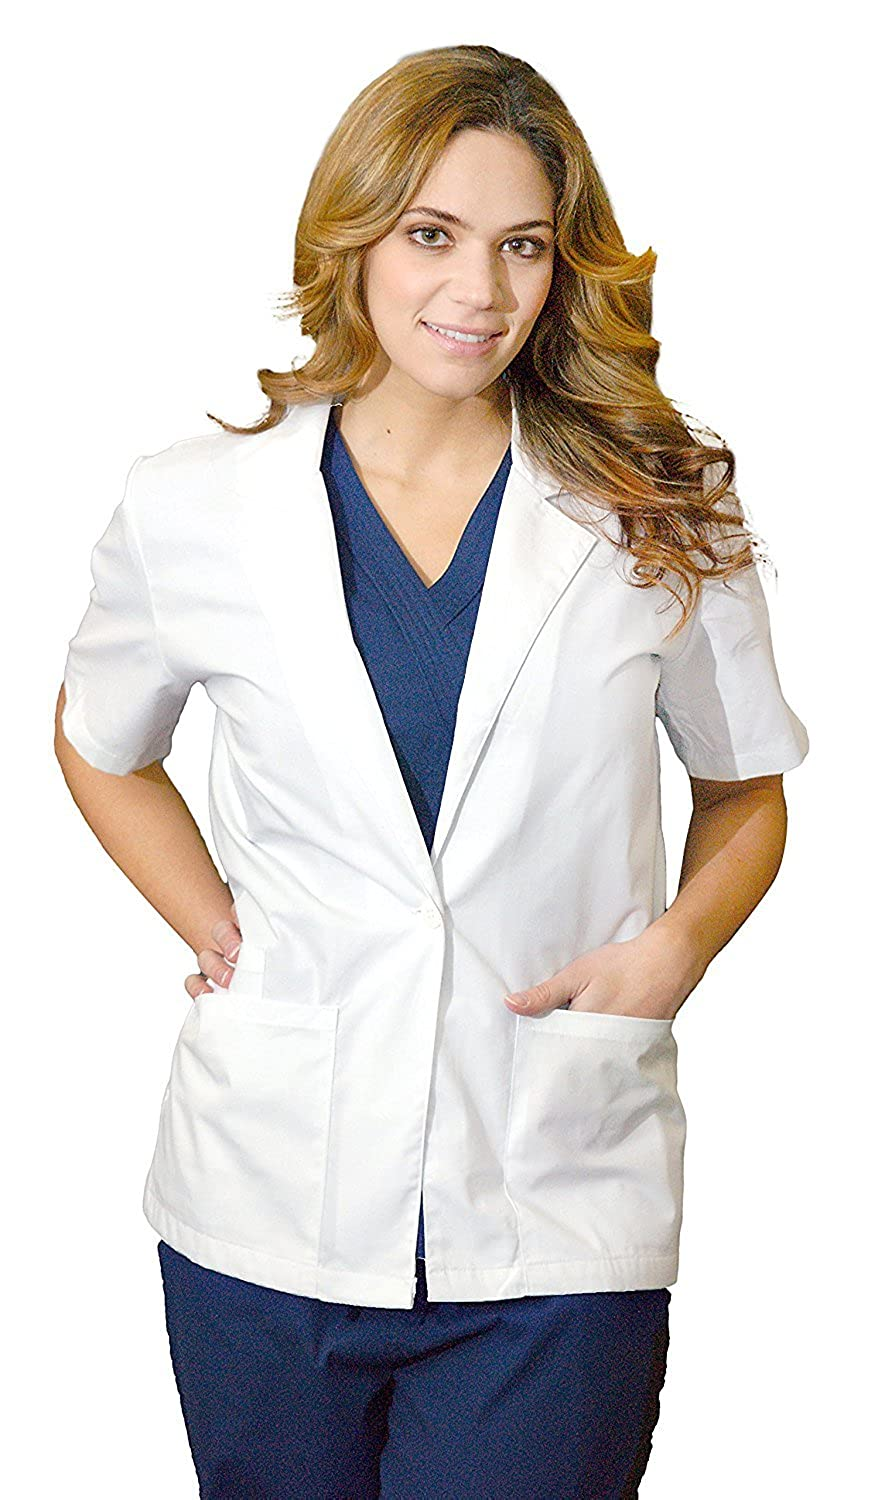 Amazon.com: Medgear Women's Short Sleeves Lab Coat, White: Clothing